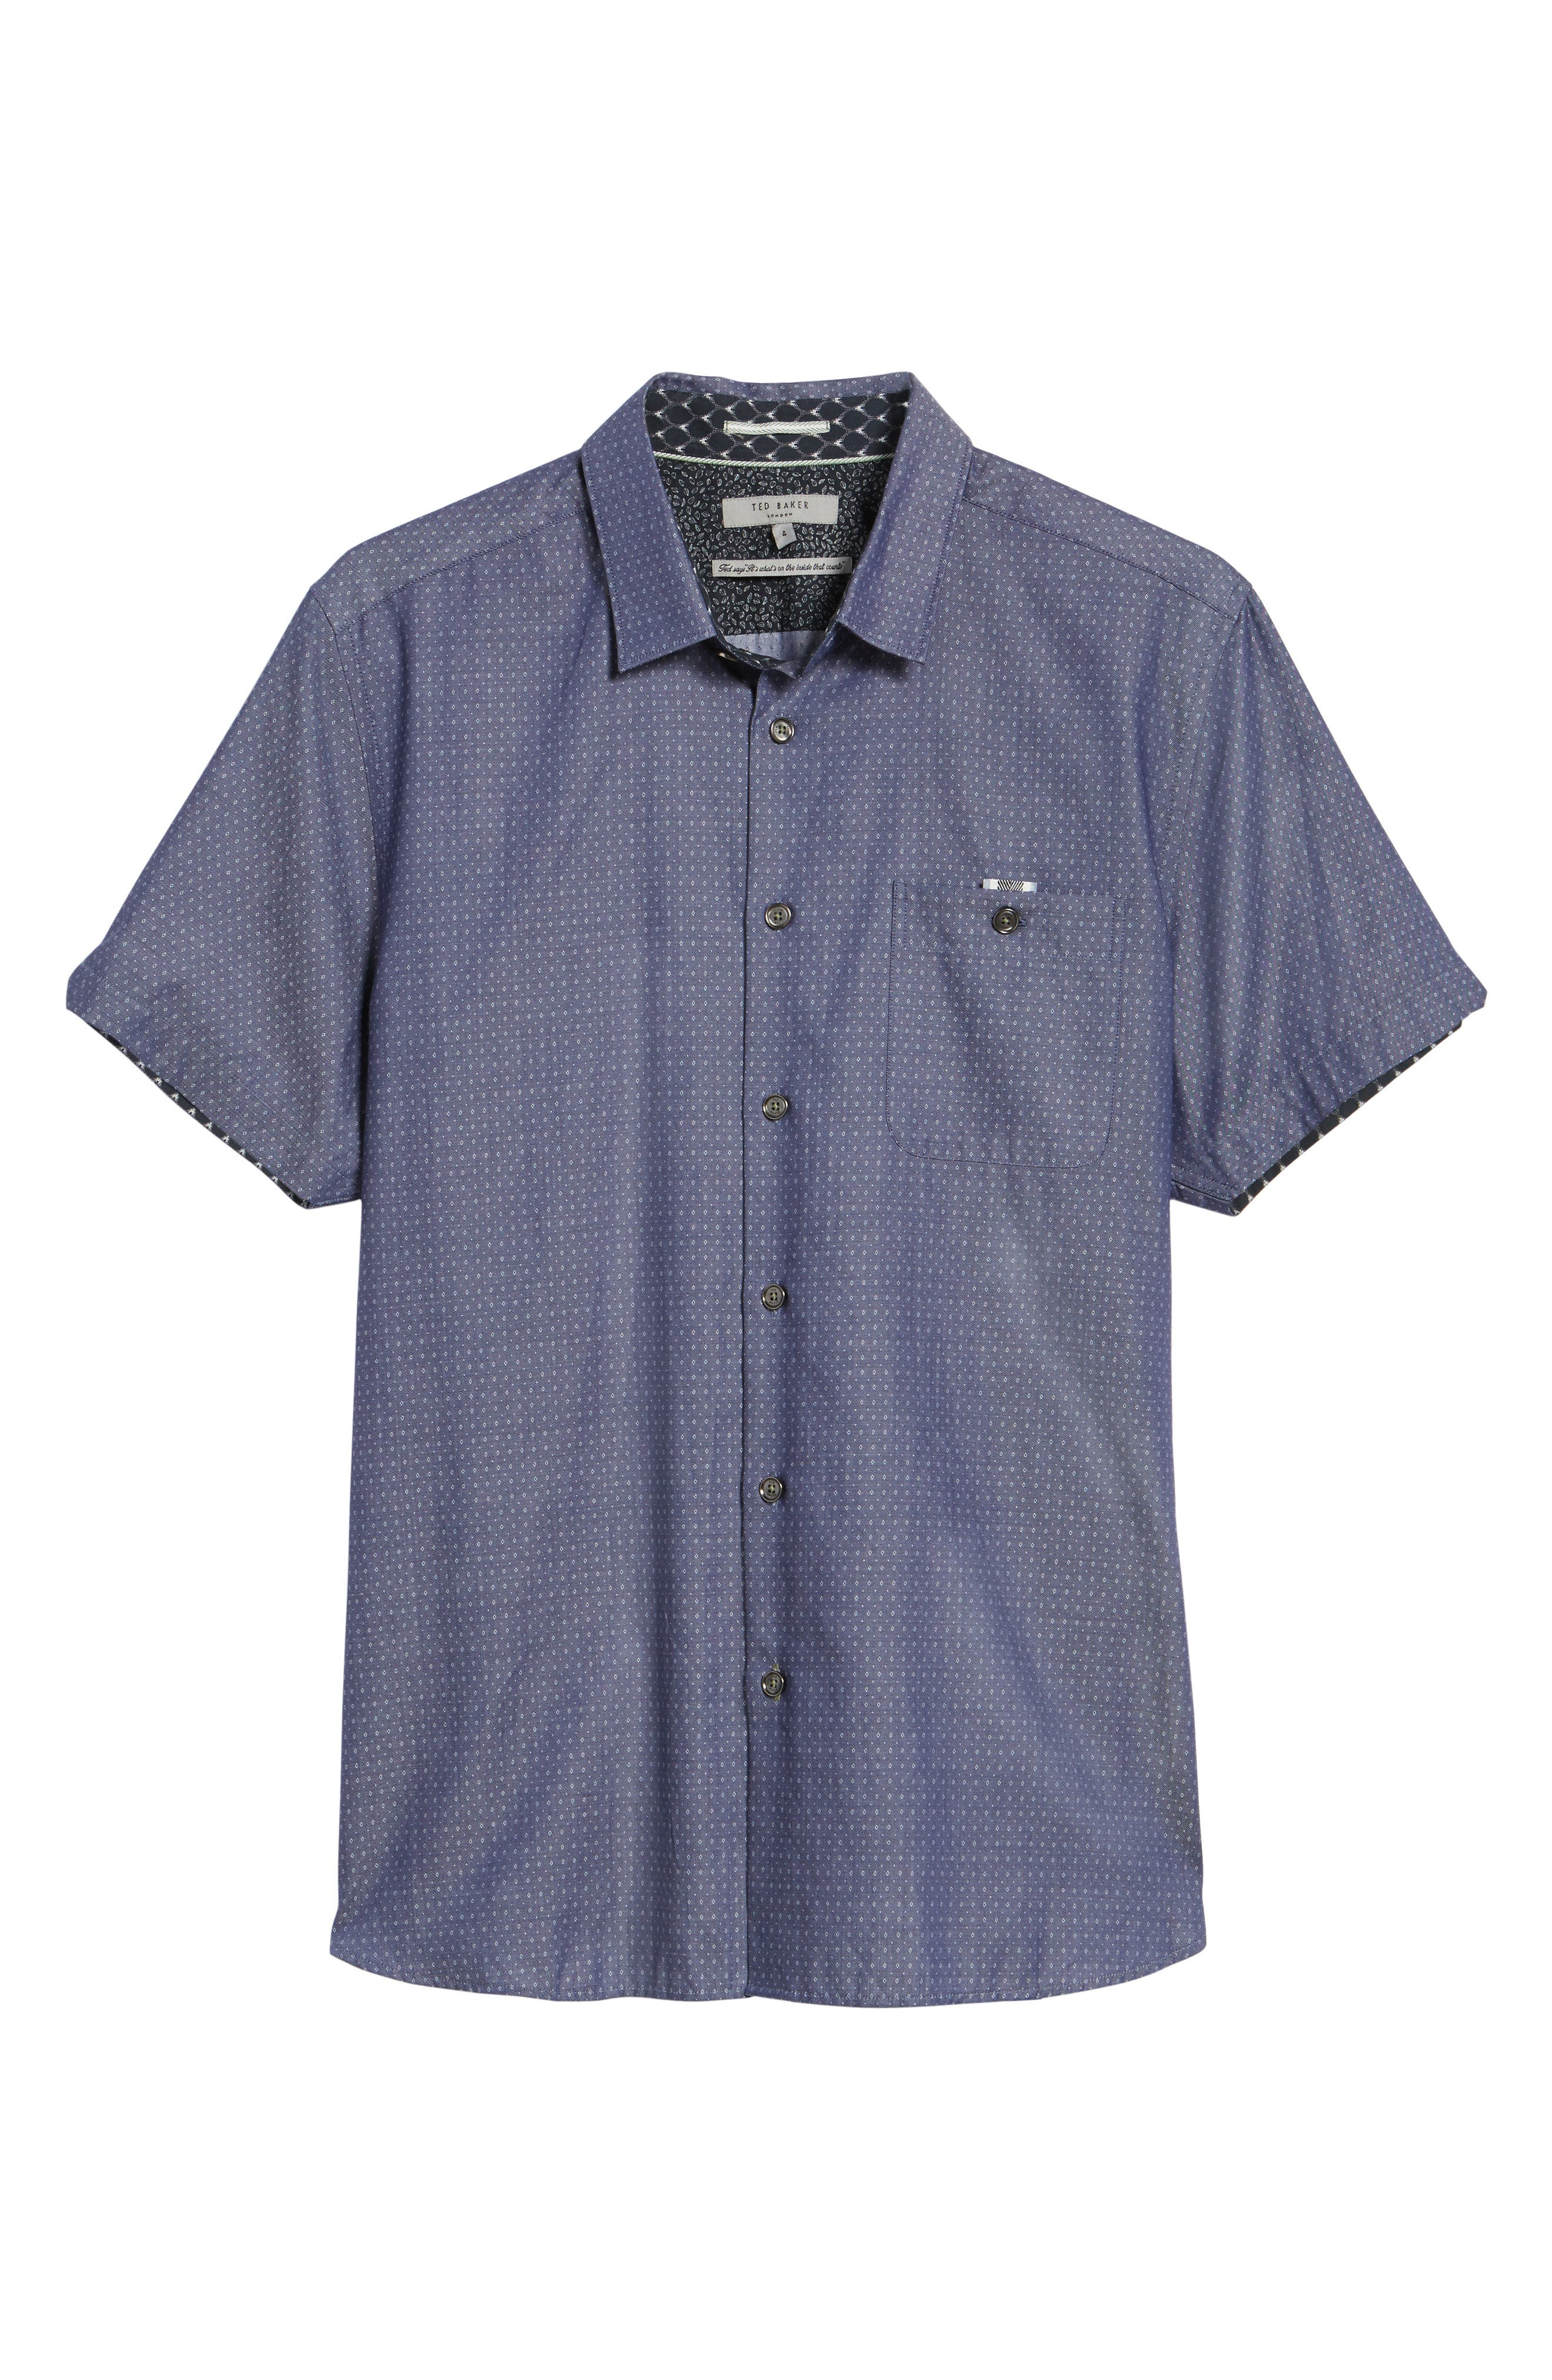 Eligant Denim Sport Shirt,                             Alternate thumbnail 6, color,                             421